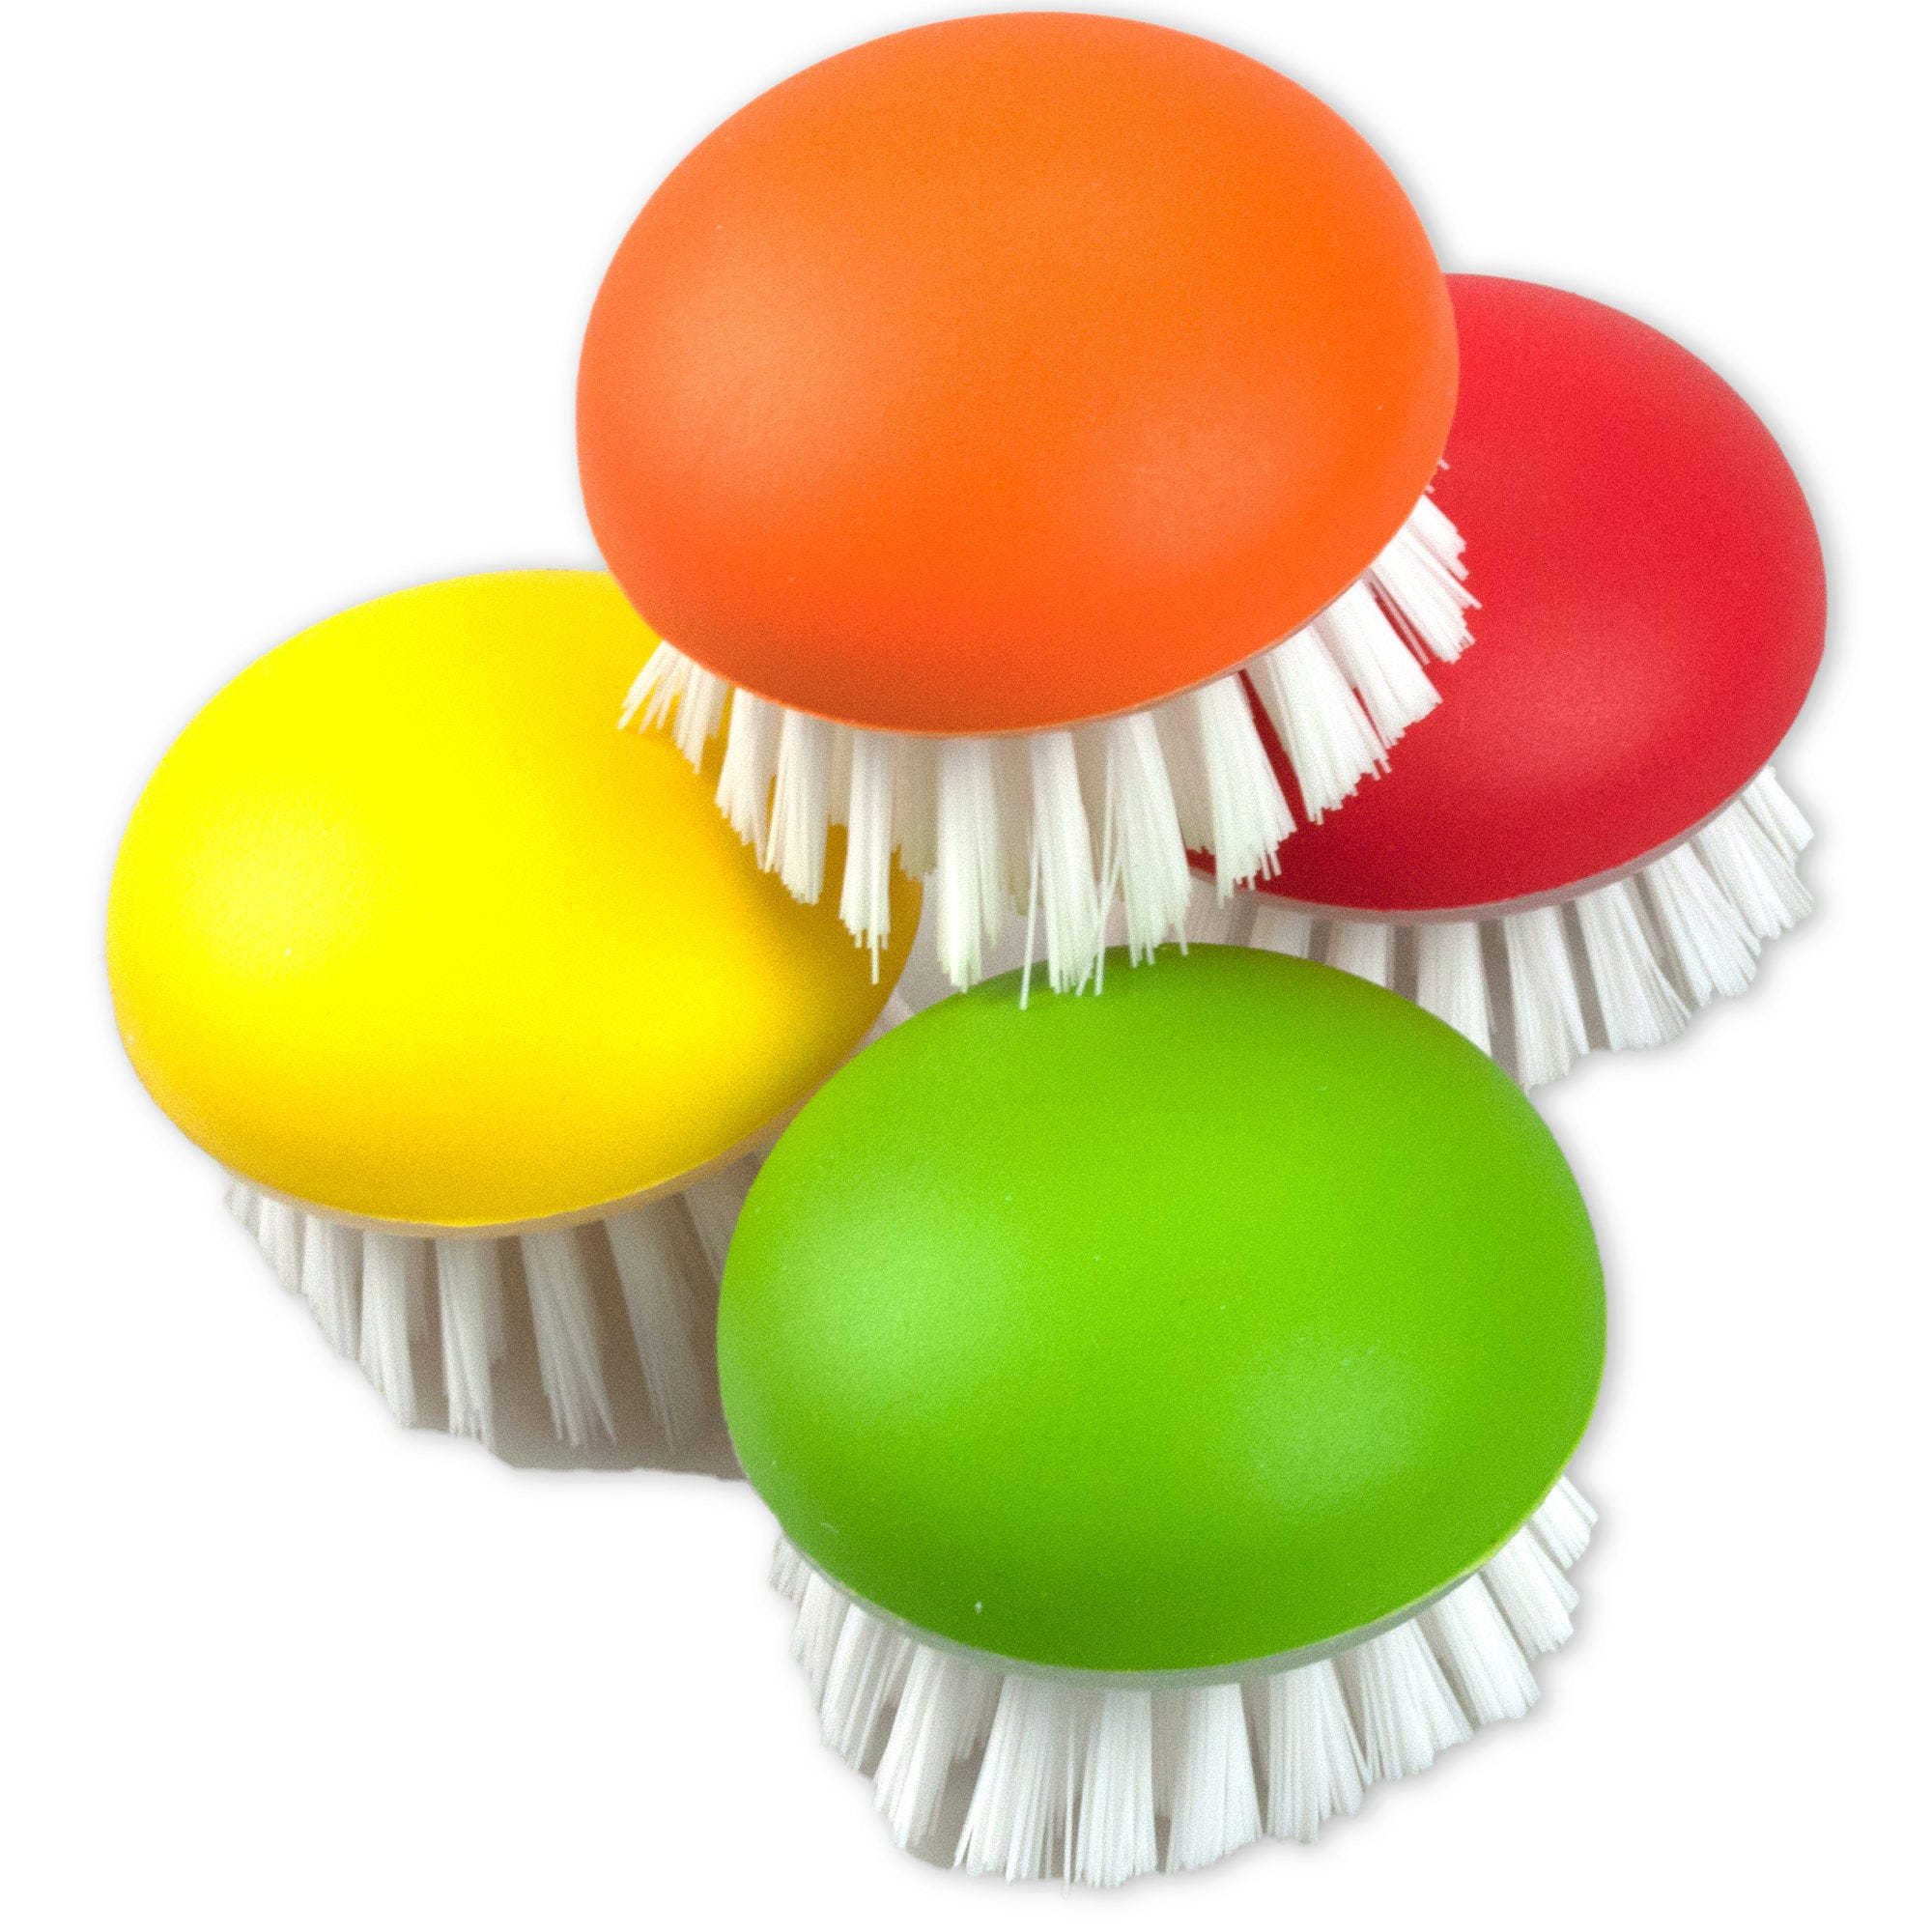 Assorted Color Vegetable Brush in Countertop Display- Qty 4